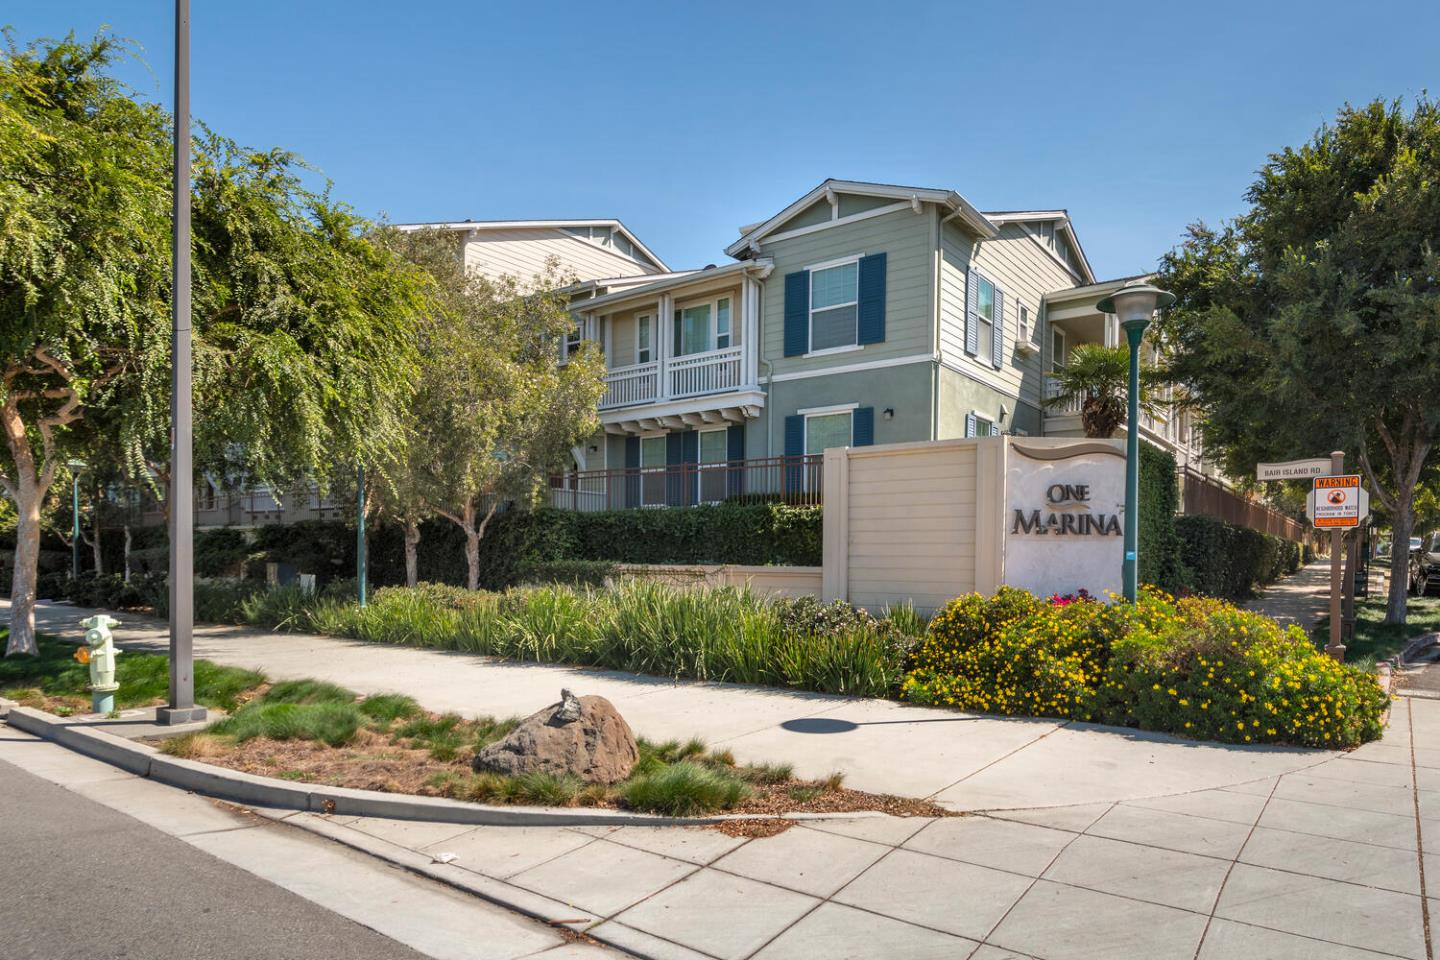 THIS DISTINCTIVE TWO-STORY CONDO IN THE ONE MARINA DEVELOPMENT IS LOCATED NEAR THE HEART OF THE BAY TRAIL AND THE TRANQUILITY OF THE WATER. FEATURING 1,497 SQ. FT., THIS 3 BEDROOM / 2.5 BATH HOME FEELS EVEN LARGER THAN IT IS THANKS IN PART TO ITS SOARING CEILINGS. THE OPEN FLOOR PLAN ON THE MAIN LEVEL IS AN ENTERTAINERS DREAM, HIGHLIGHTED BY BUILT-INS AND A SPACIOUS KITCHEN BOASTING STAINLESS STEEL APPLIANCES AND GRANITE COUNTERTOPS. THE SECOND FLOOR IS FLOODED WITH NATURAL LIGHT AND FEATURES A SEPARATE STUDY NOOK, PERFECT FOR A FLEXIBLE WORK-FROM-HOME EMPLOYEE. GENEROUS SIZED BEDROOMS, BEAUTIFULLY APPOINTED BATHROOMS, AN UPSTAIRS LAUNDRY ROOM, TONS OF CLOSET AND STORAGE SPACE, NEW CARPETS AND NEUTRAL PAINT WILL DELIGHT YOUR BUYER! WITH A LARGE 2-CAR GARAGE, A FRONT PORCH, EASY ACCESS TO WALKING TRAILS AND THE 101, LIVING AND RELAXING IN THIS COMMUNITY EFFORTLESS.